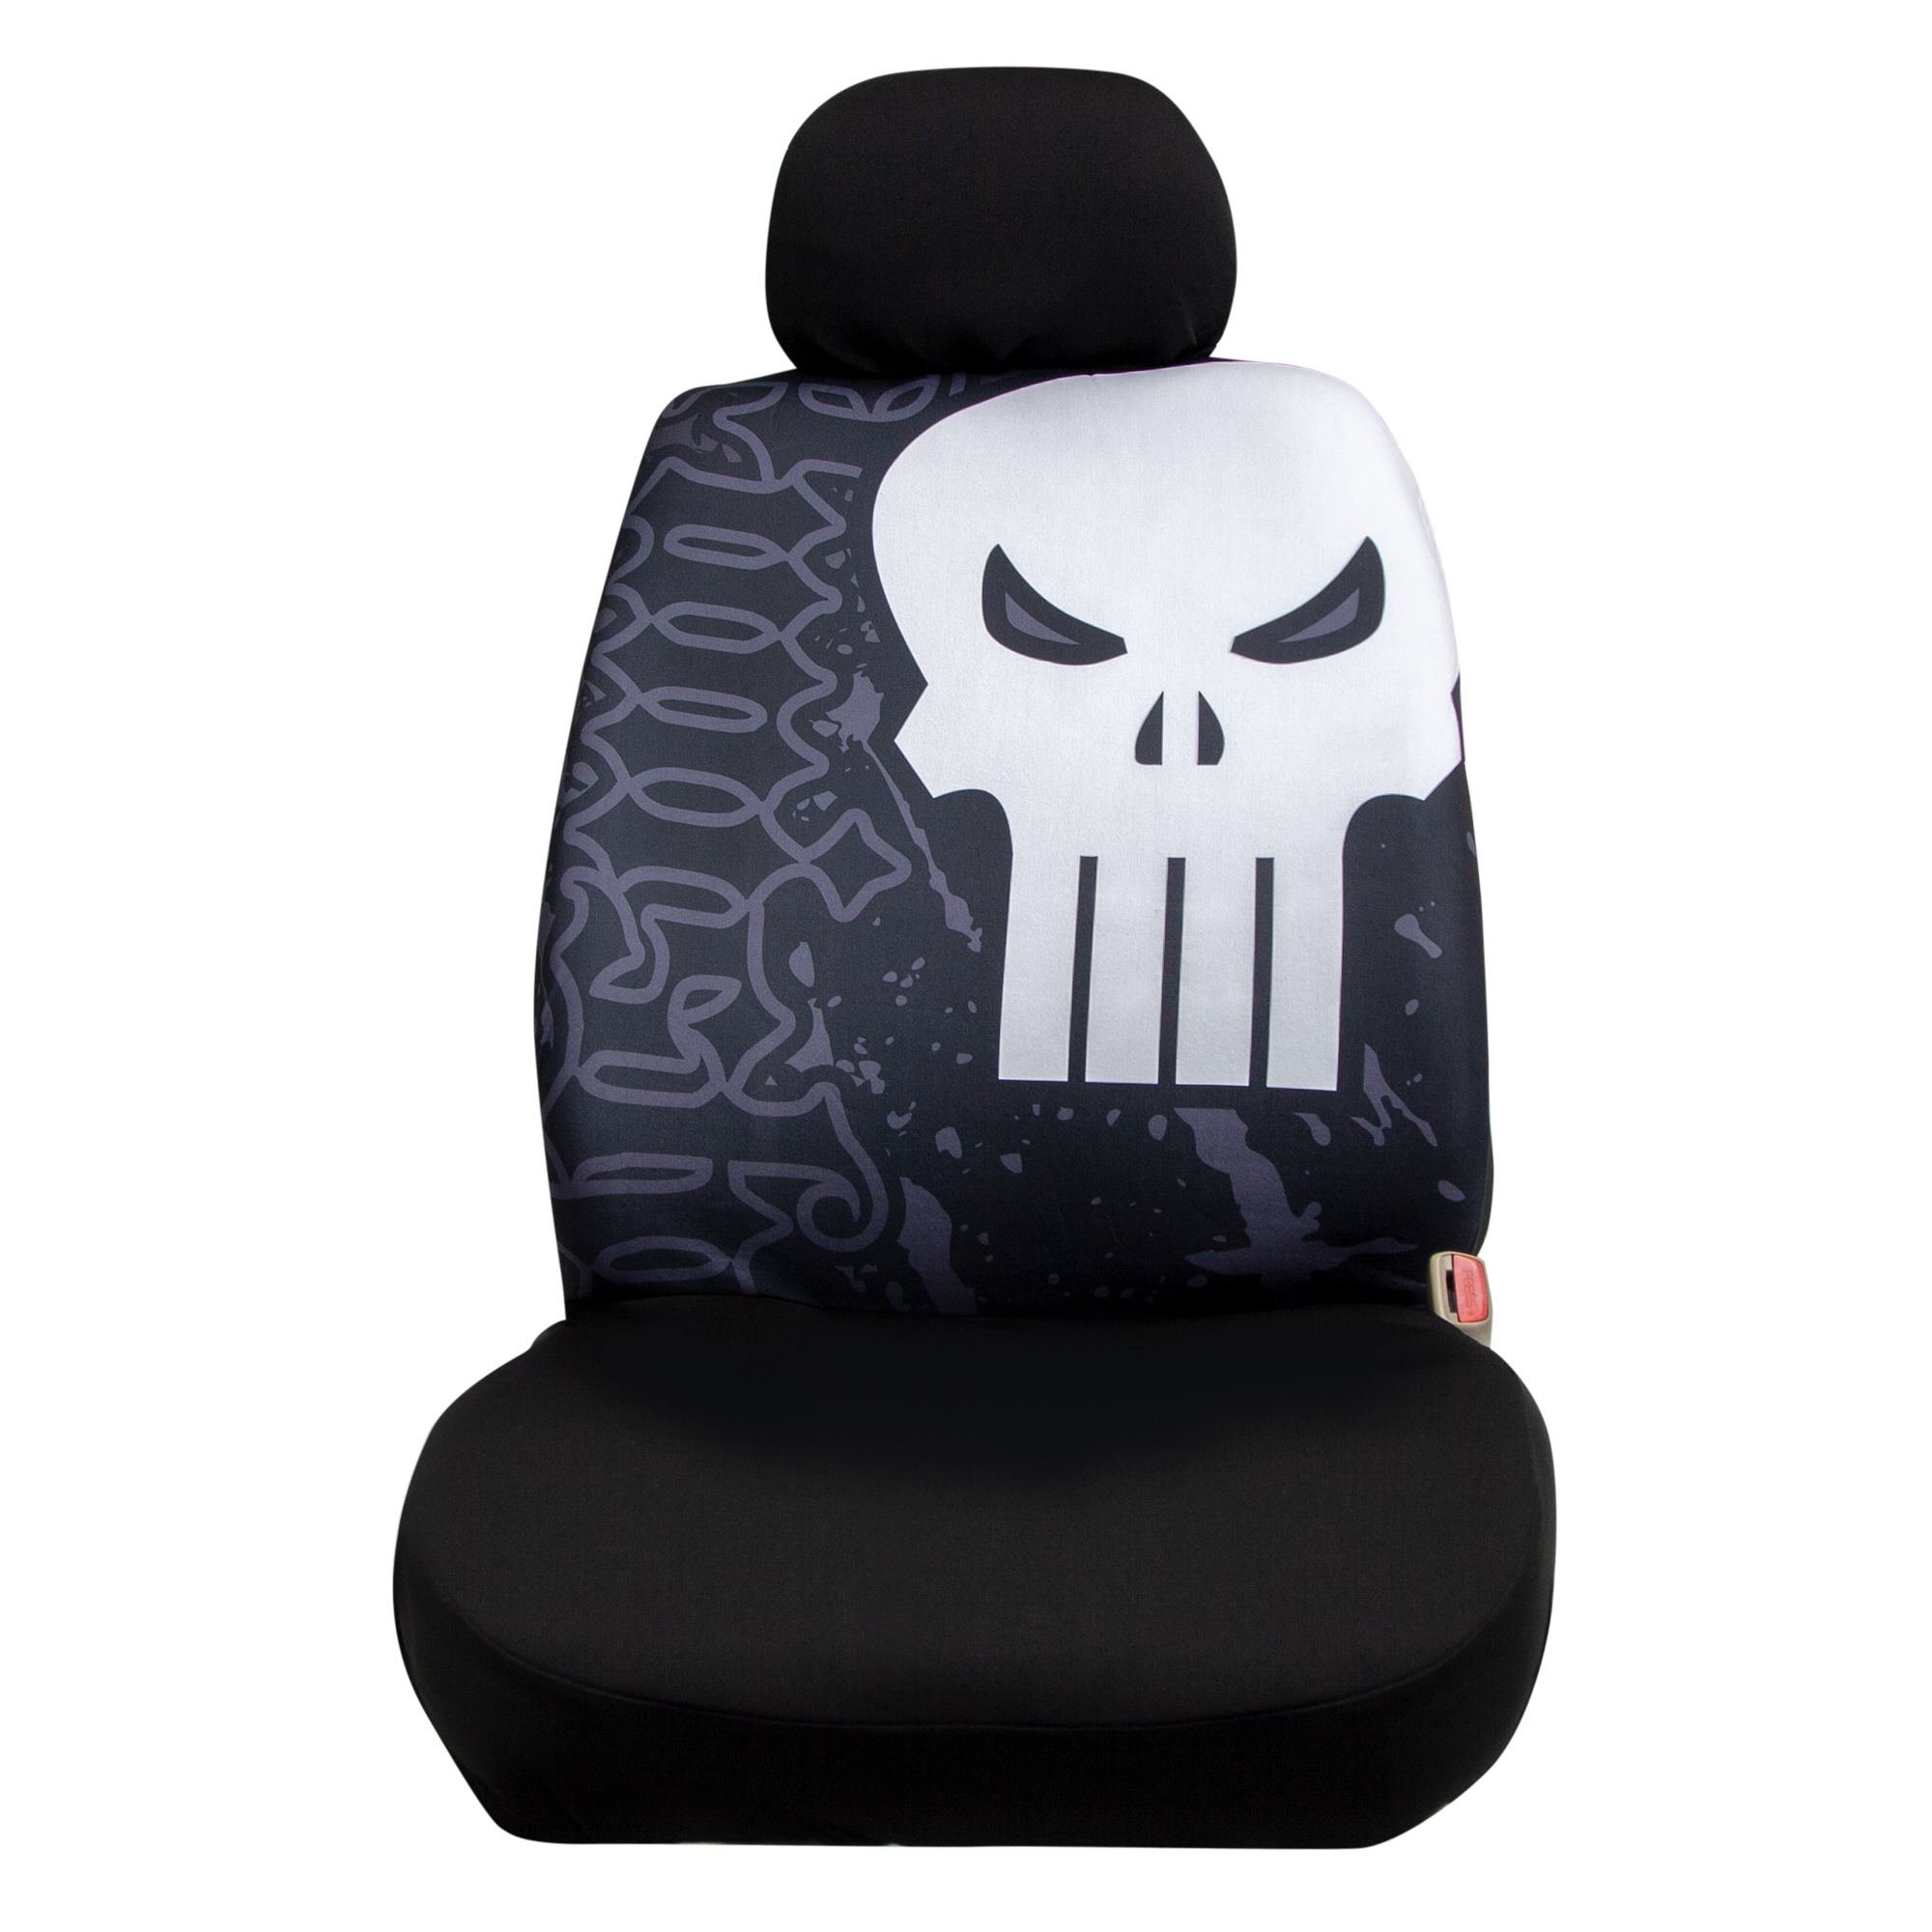 Marvel Punisher Low Back Seat Cover with Headrest Cover